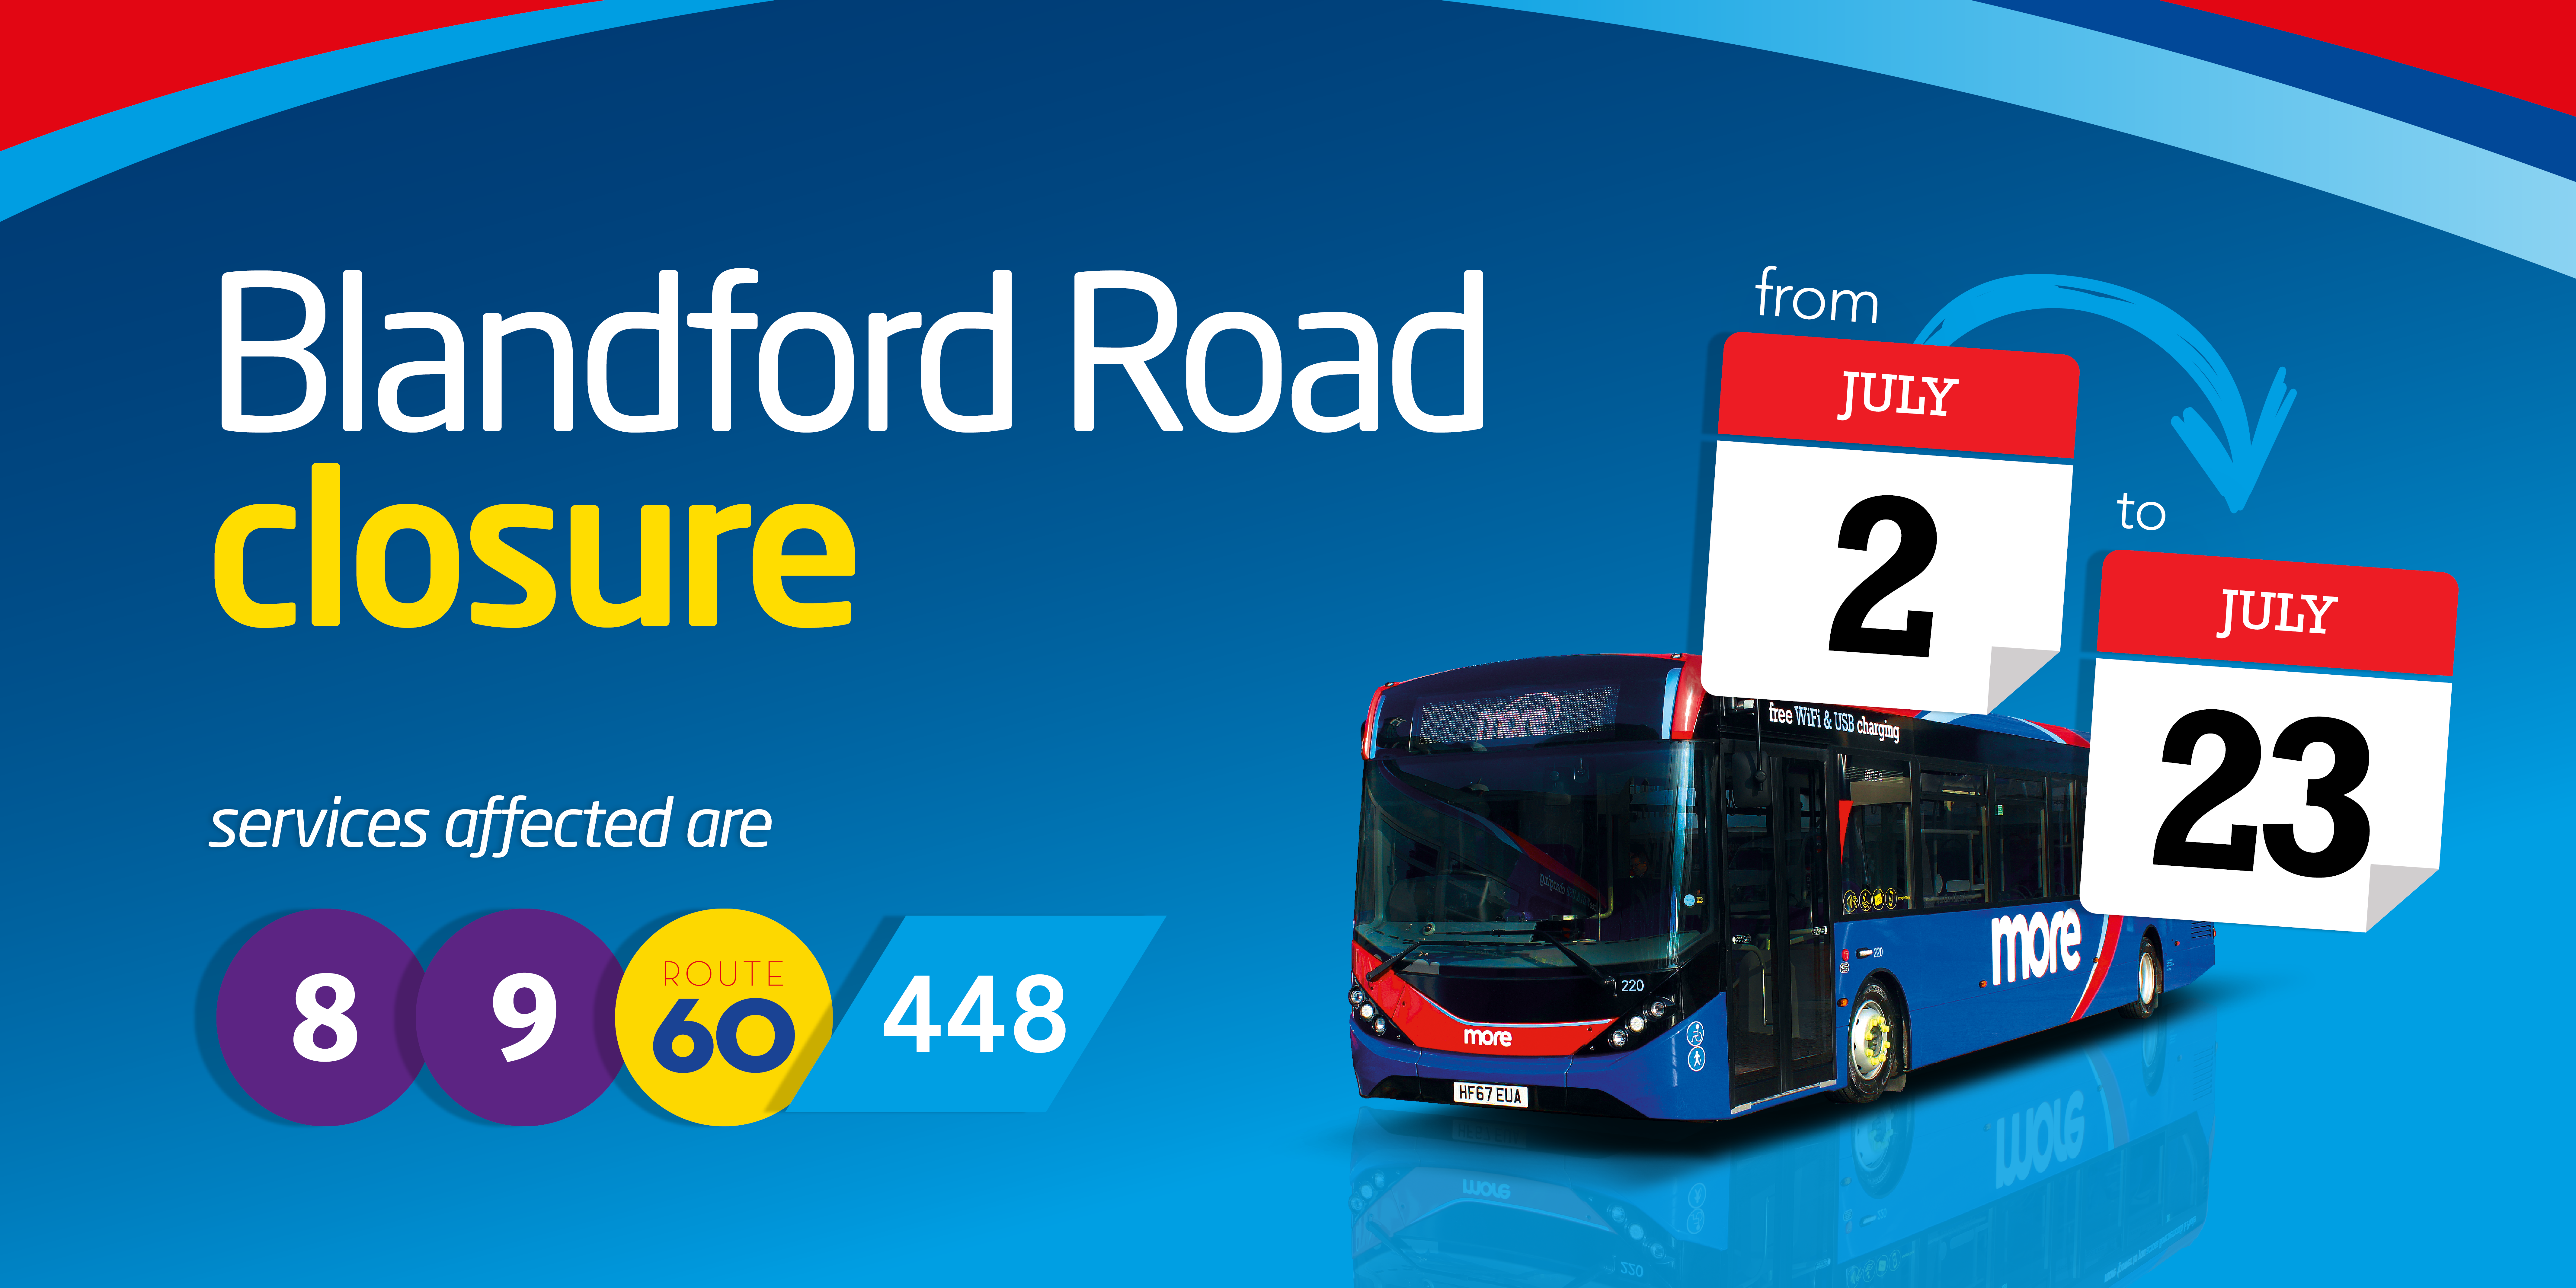 A promotional image for blandford road closure